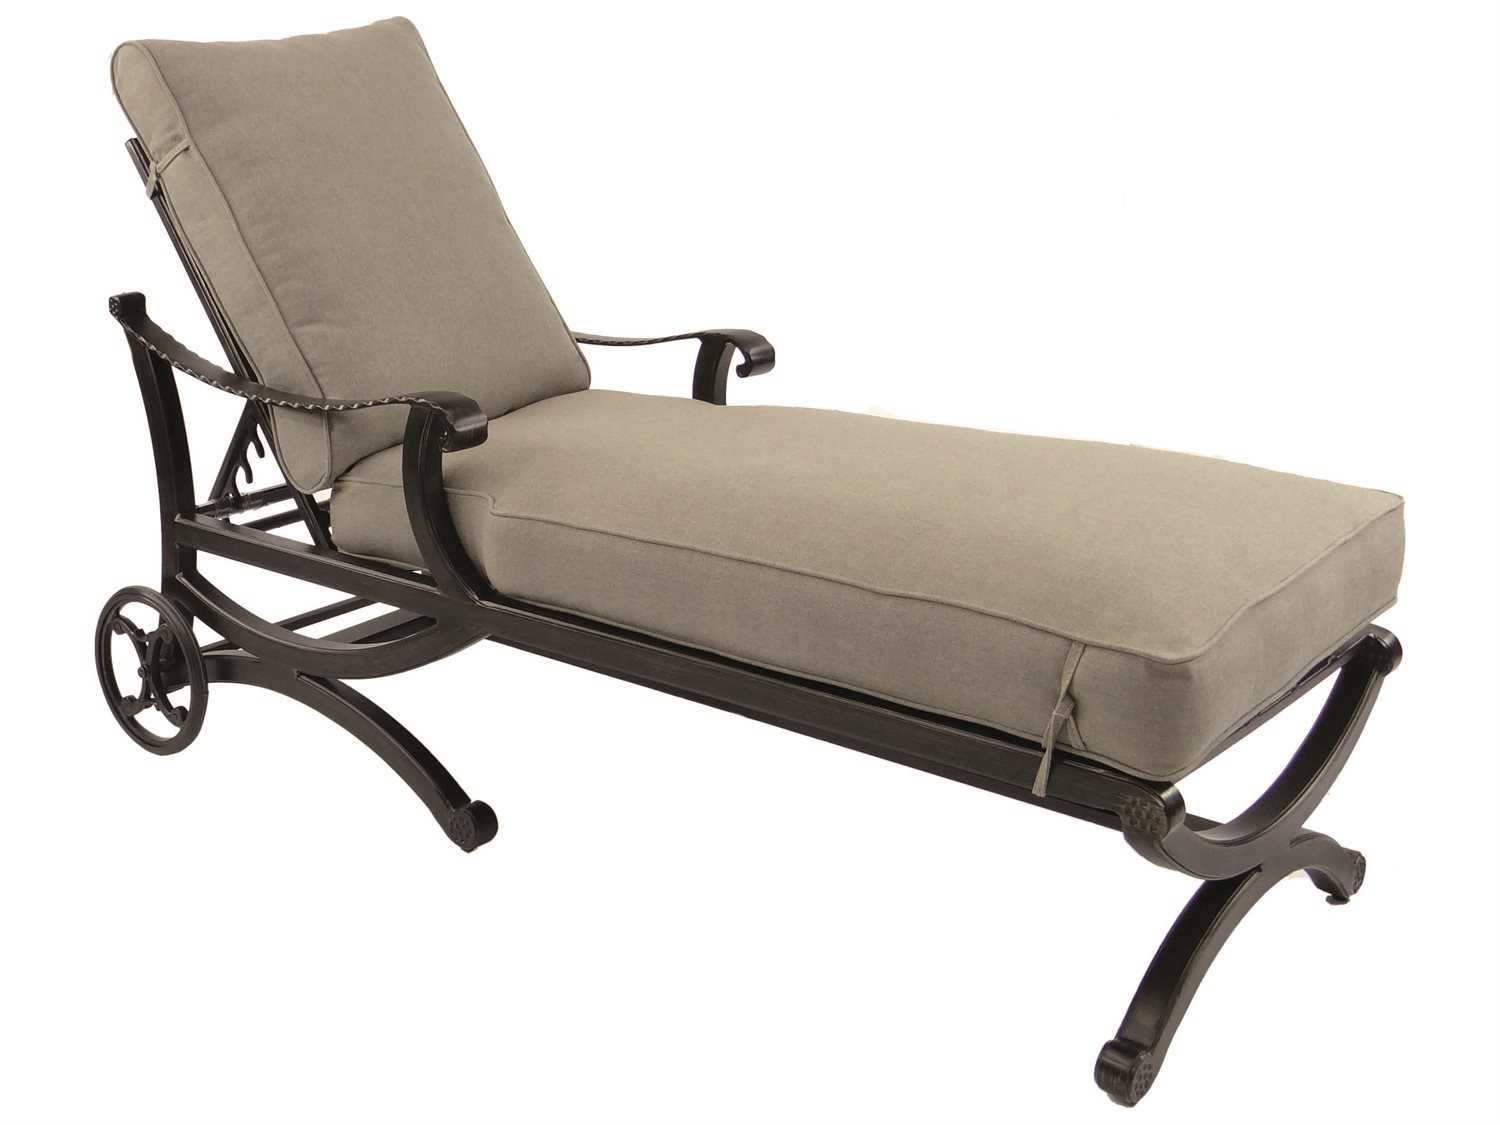 Castelle telluride cushion cast aluminum adjustable chaise for Aluminum chaise lounge with wheels